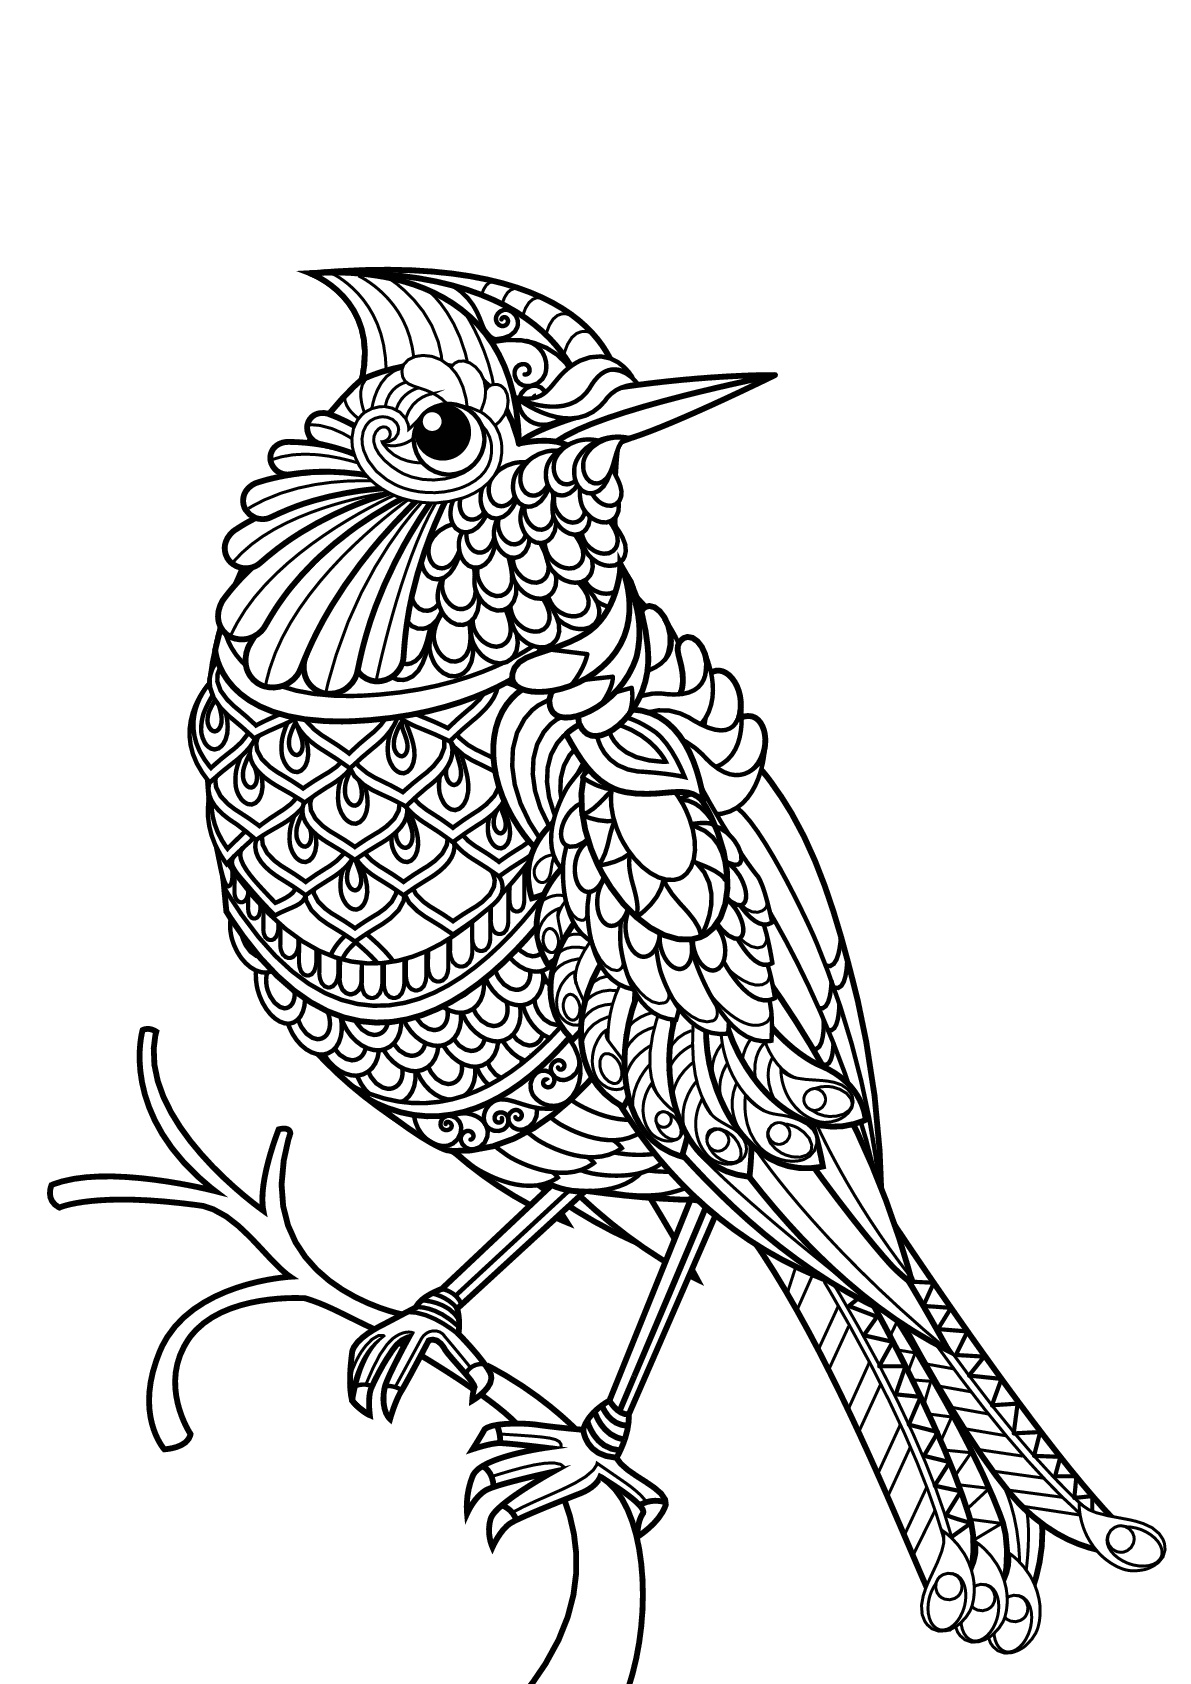 coloring pages of birds bird coloring pages of pages coloring birds